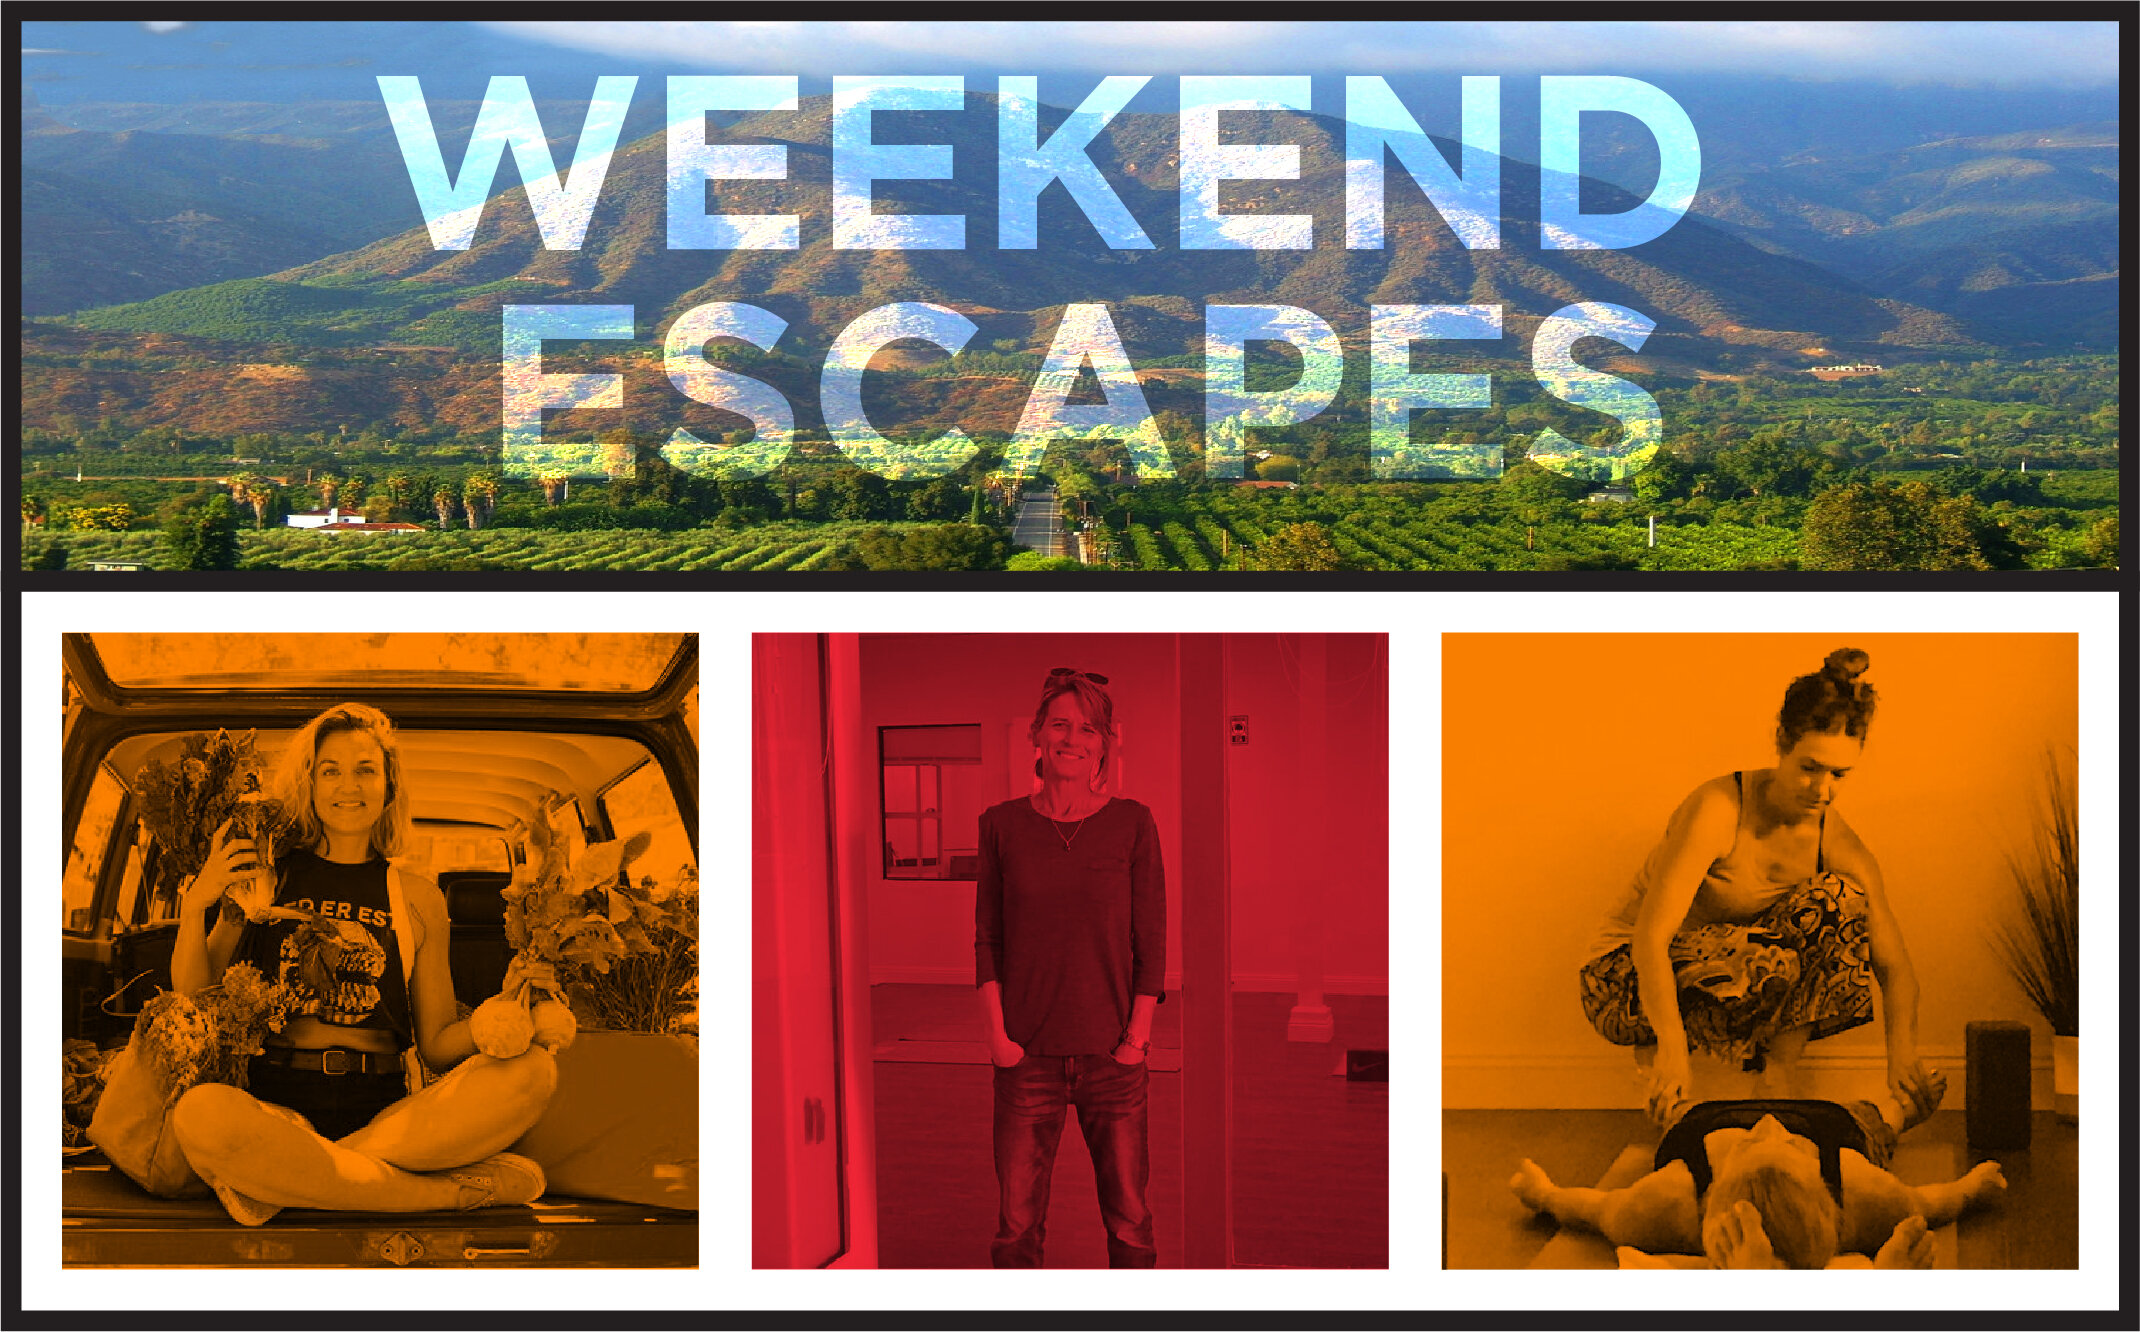 Weekend Escapes image.jpg